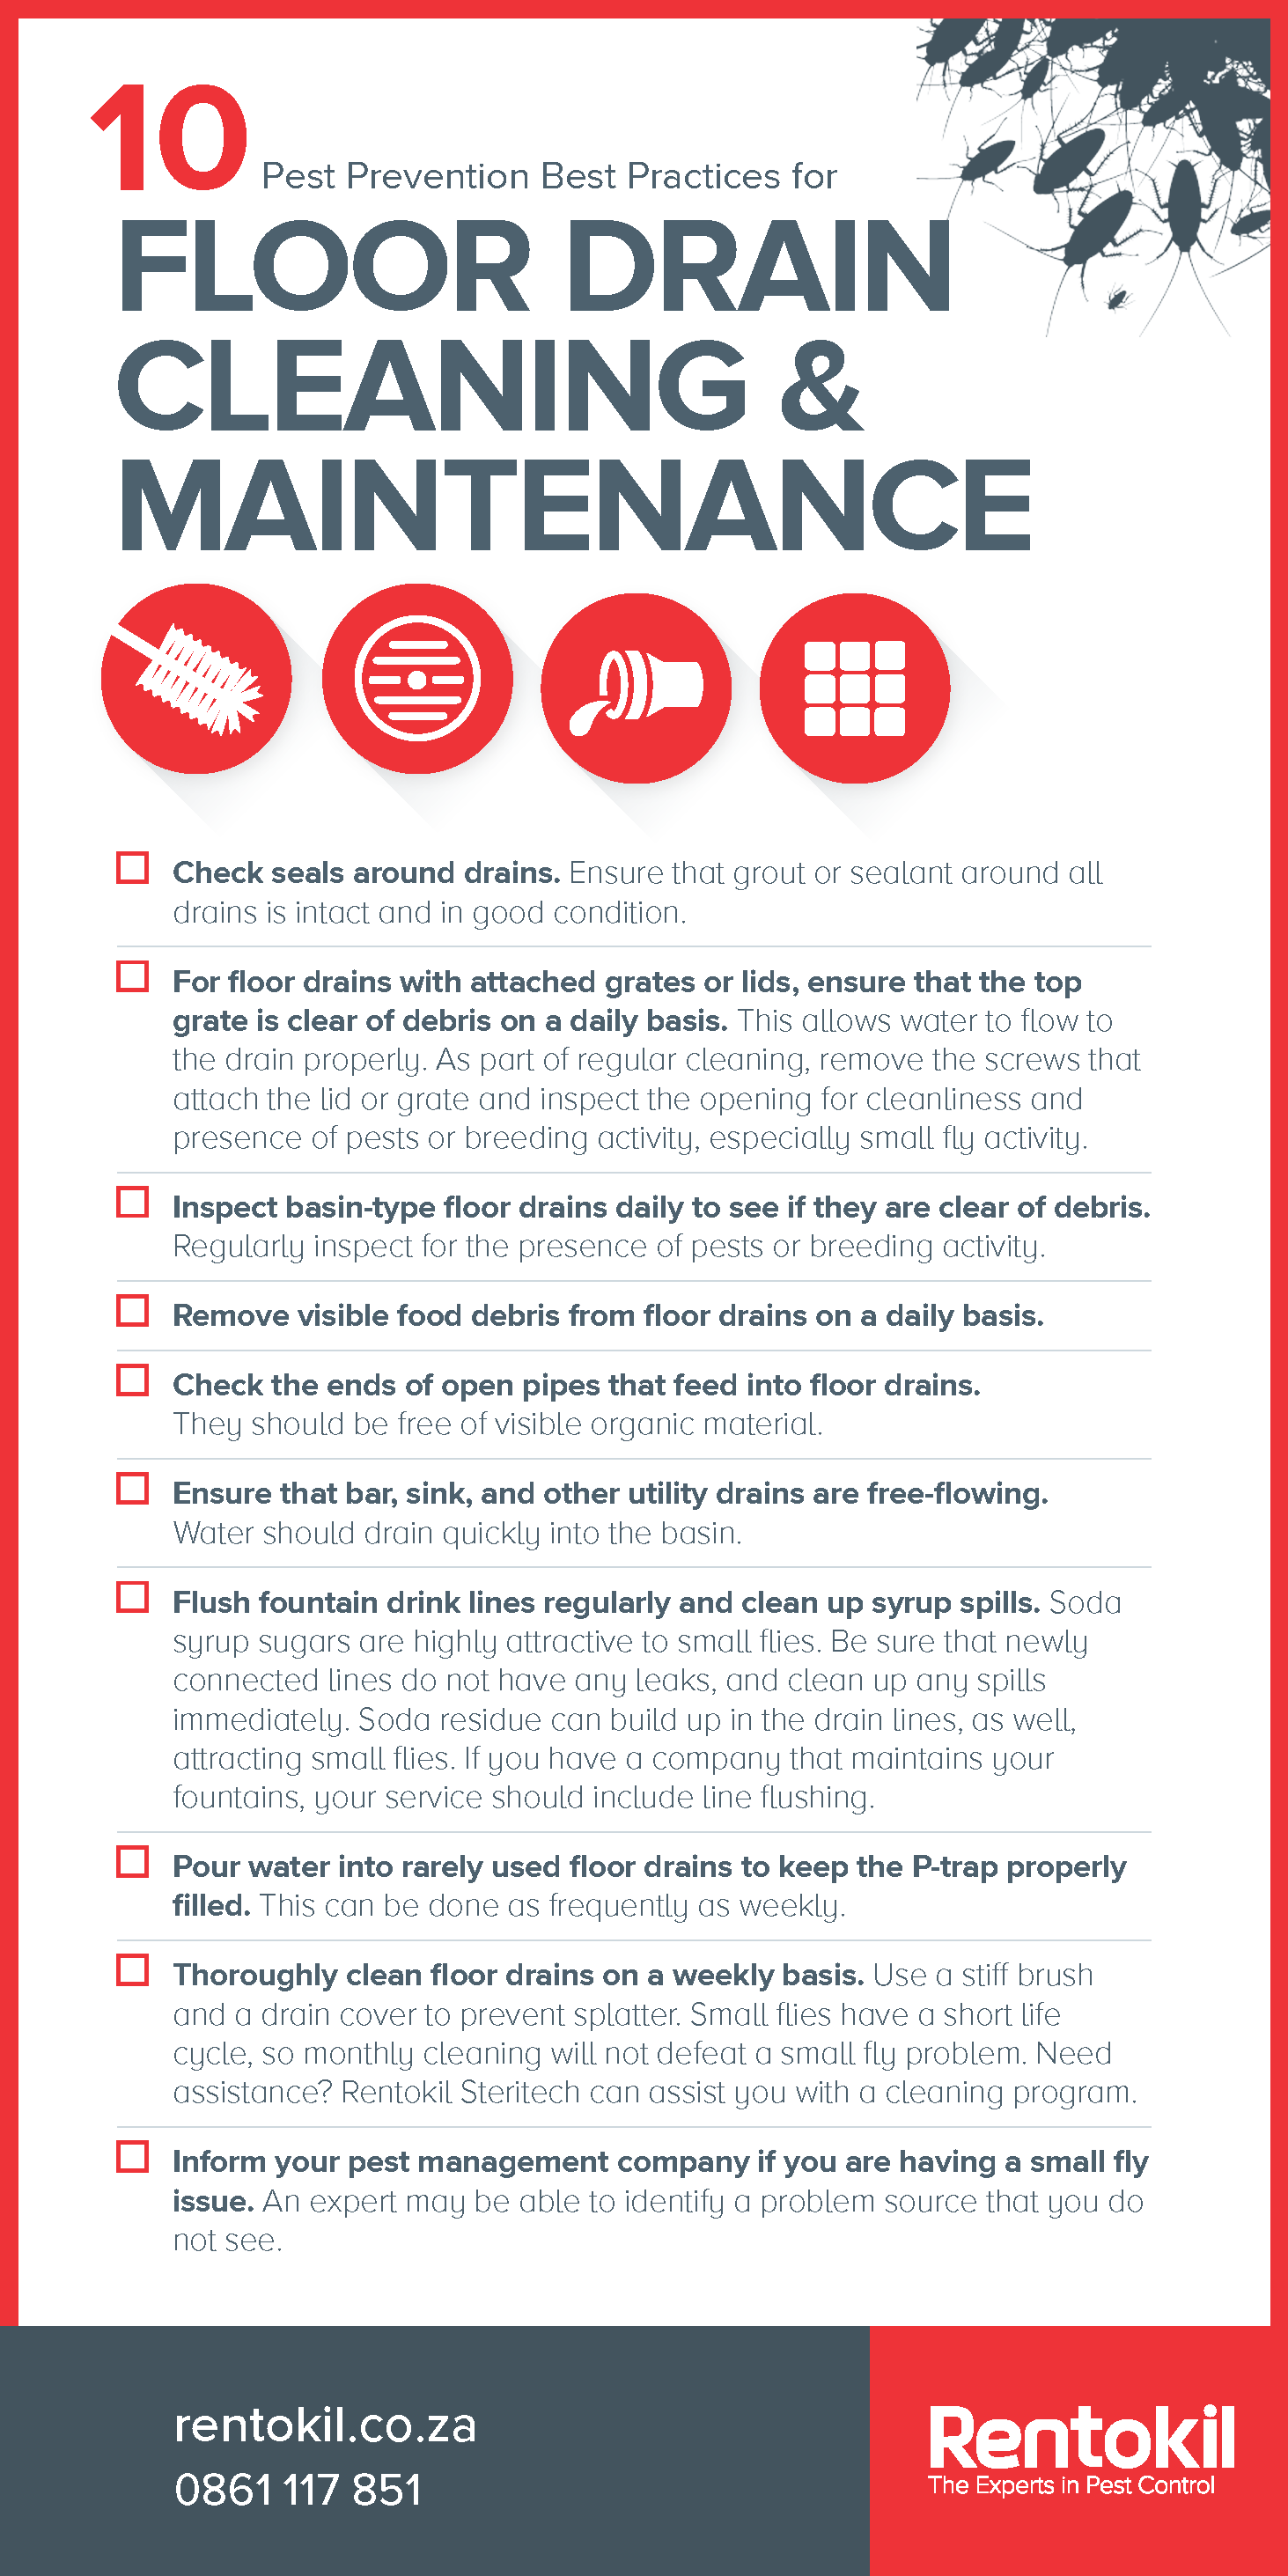 Pest Prevention Poster - 10 Best Practices for Floor Drain Cleaning and Maintenance